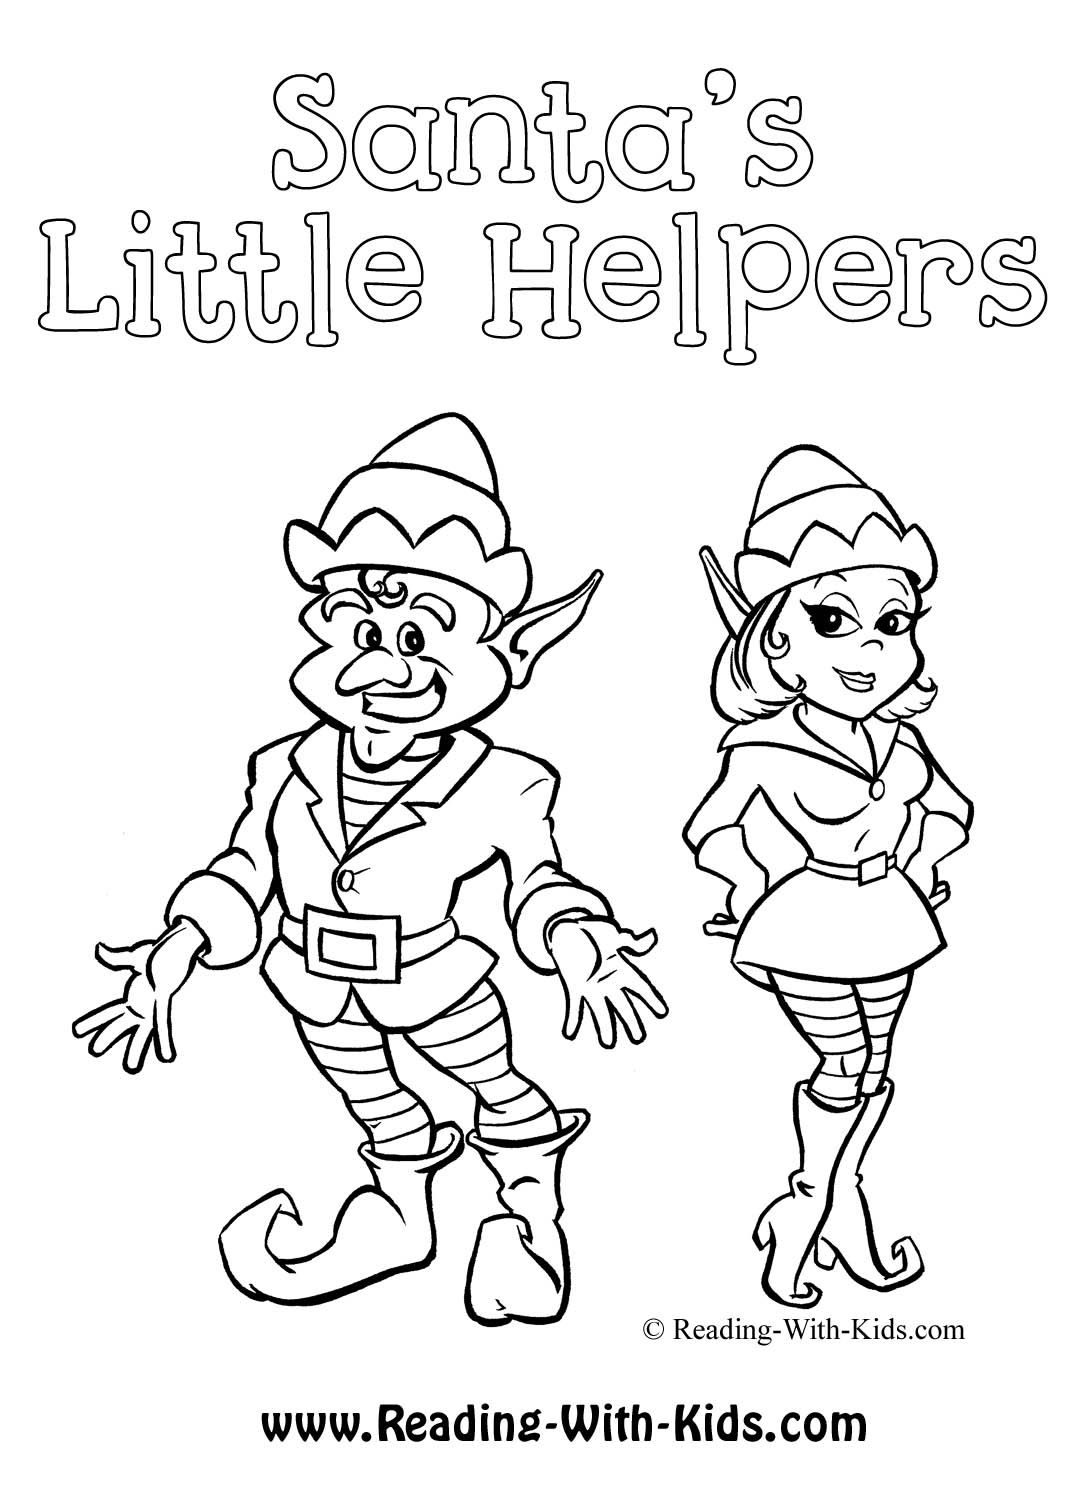 Santas Little Helpers Elf Coloring Sheet Elves Christmas ColoringSheets